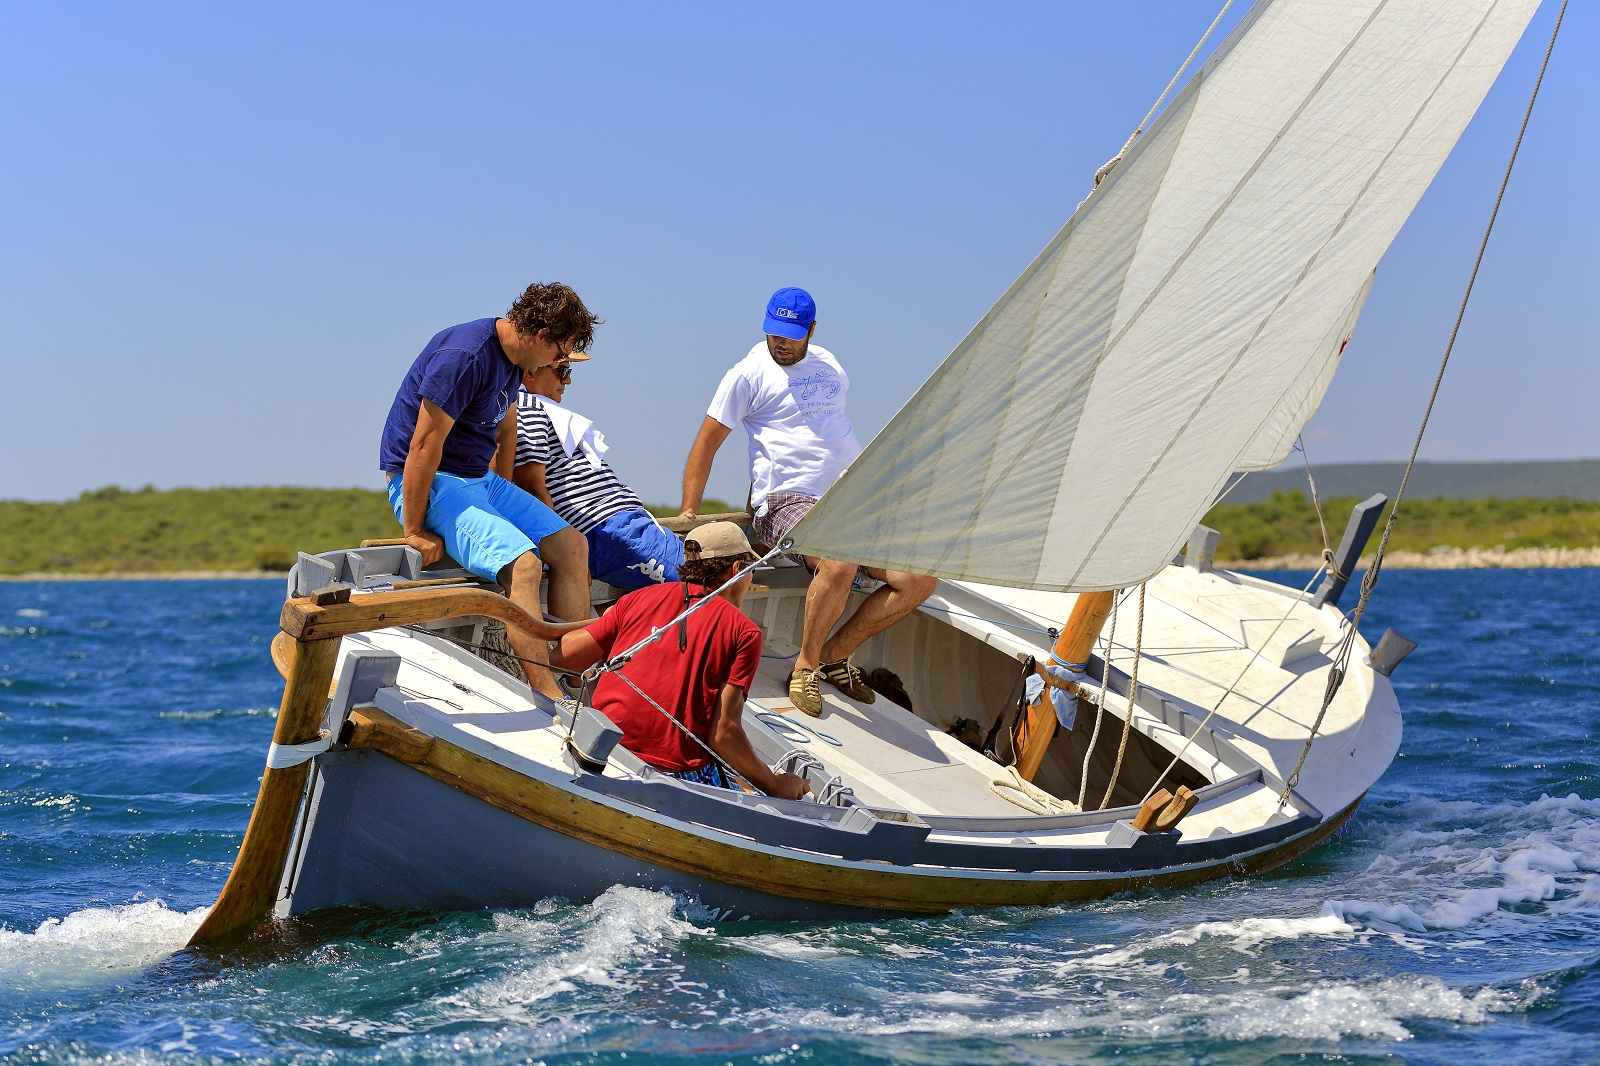 rental, sports, sailing, boats, water, Biograd, Croatia